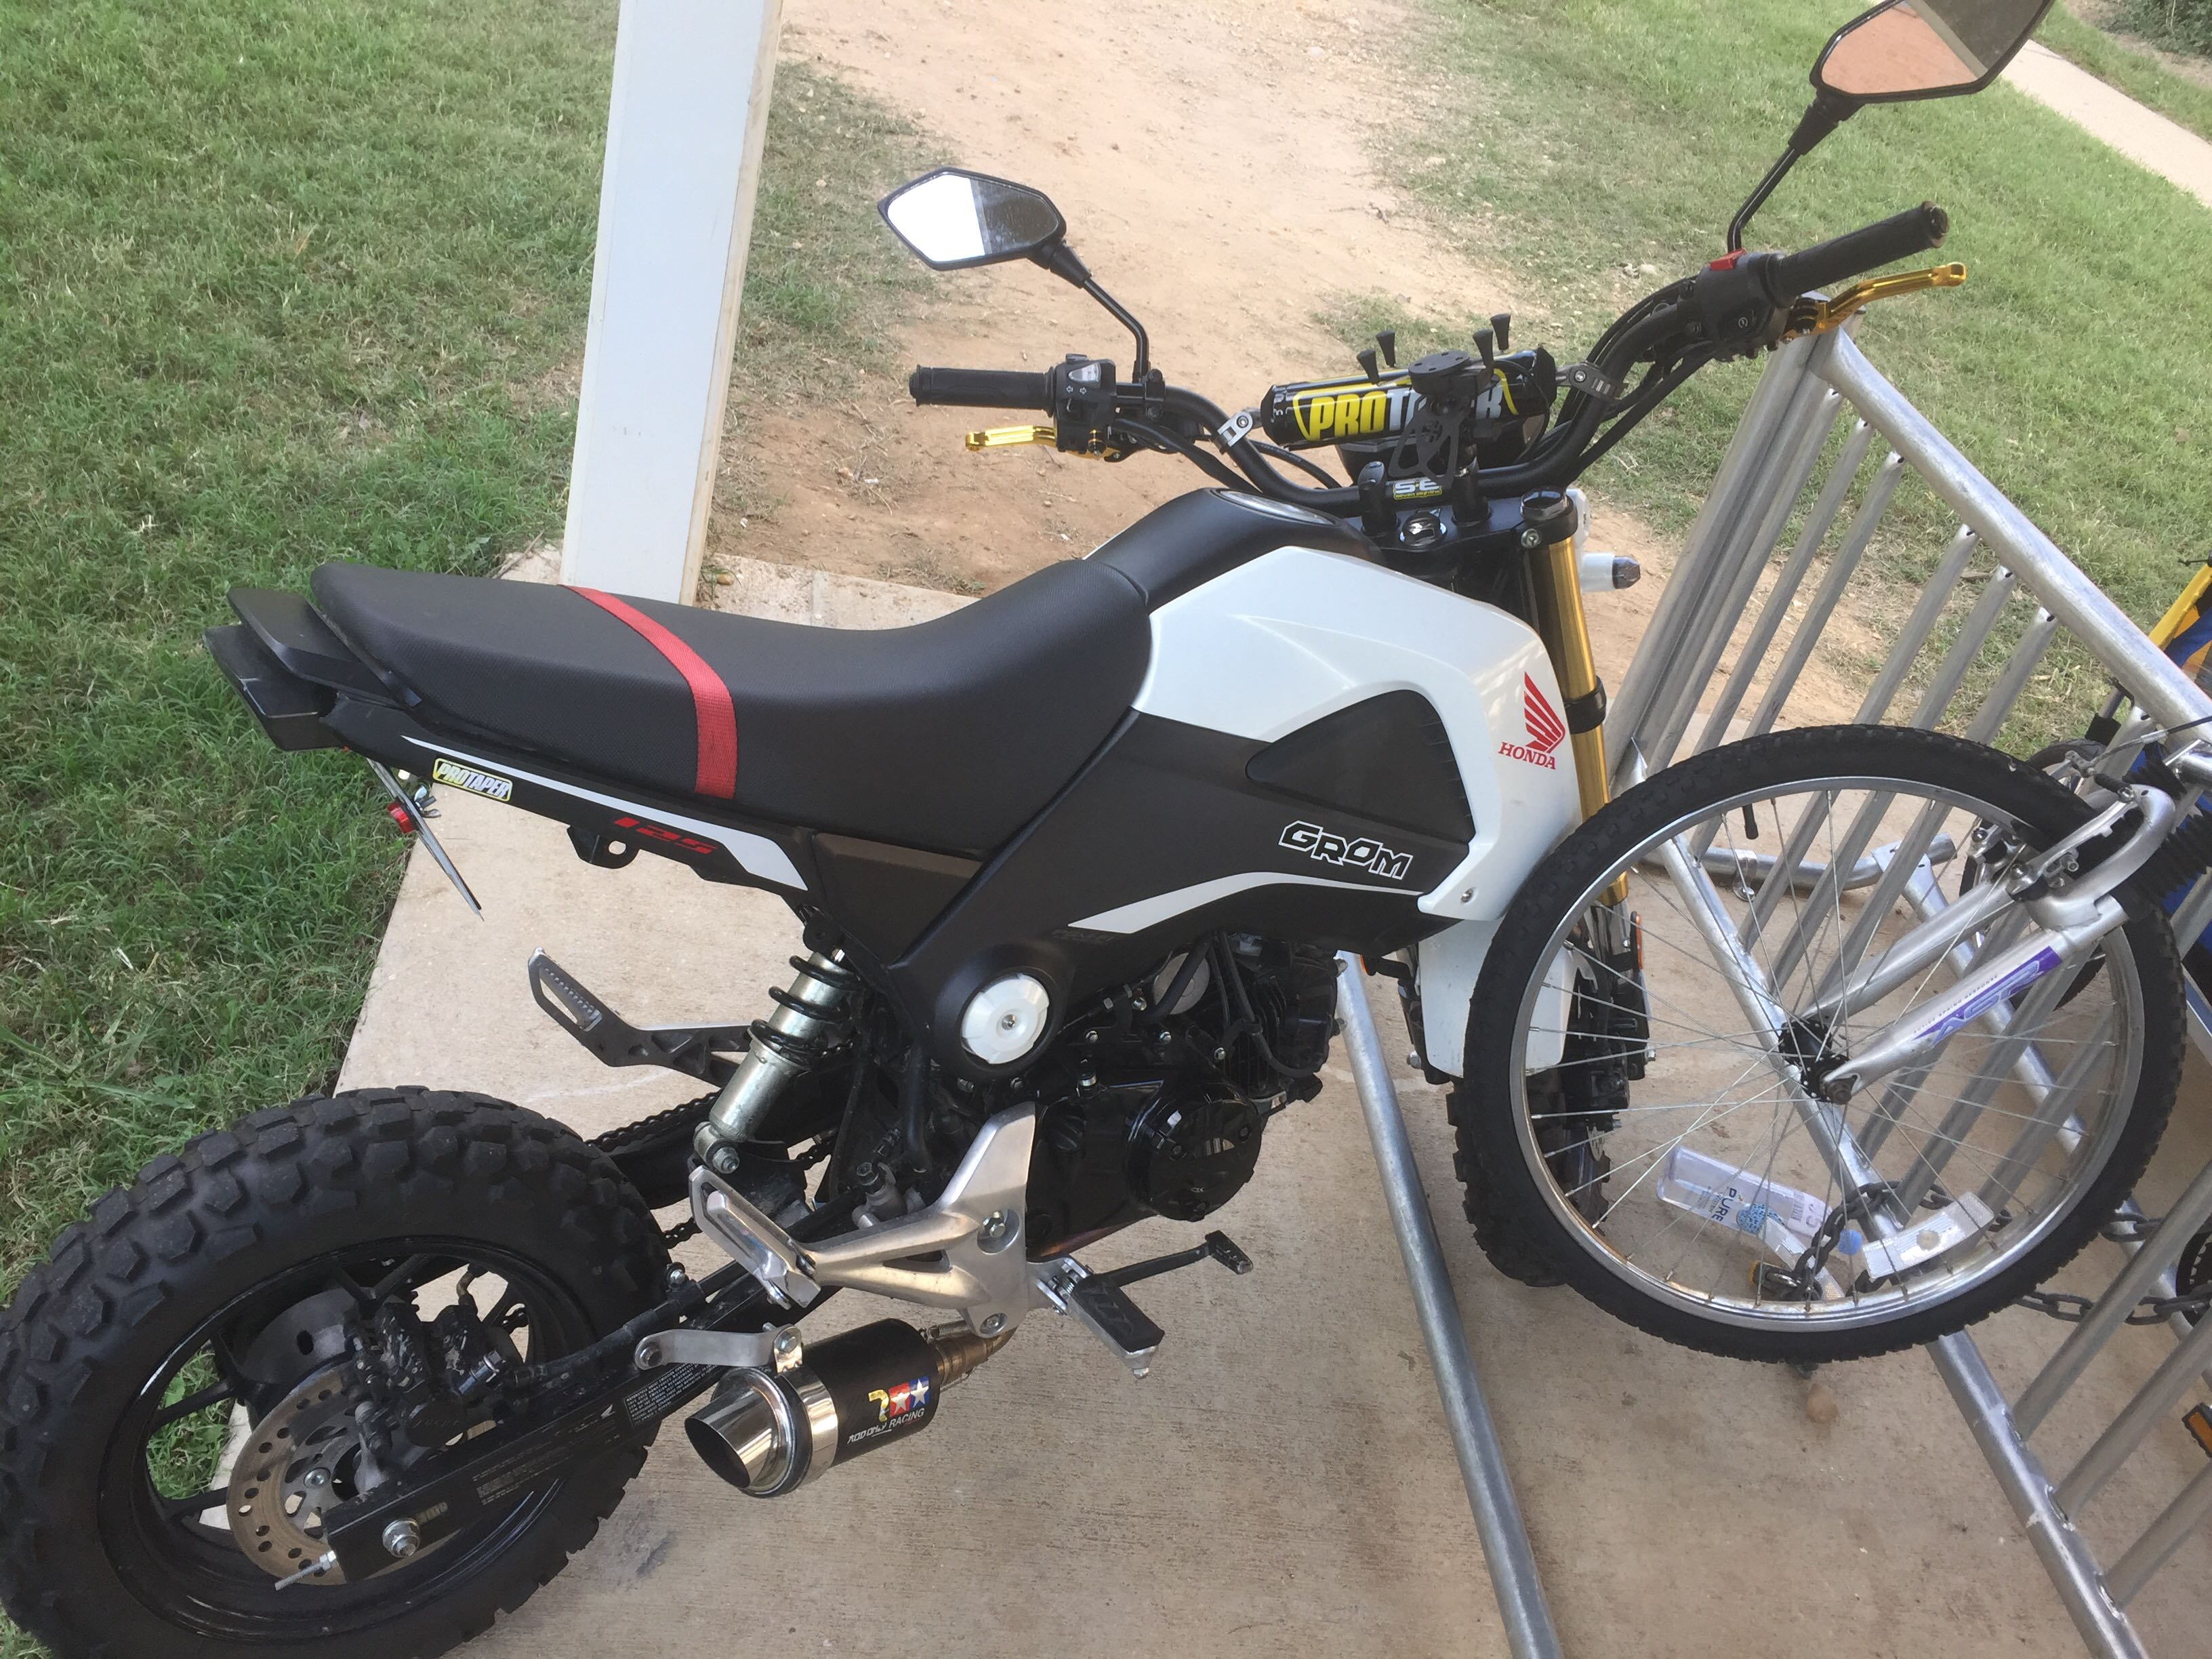 Super and fun Honda Grom